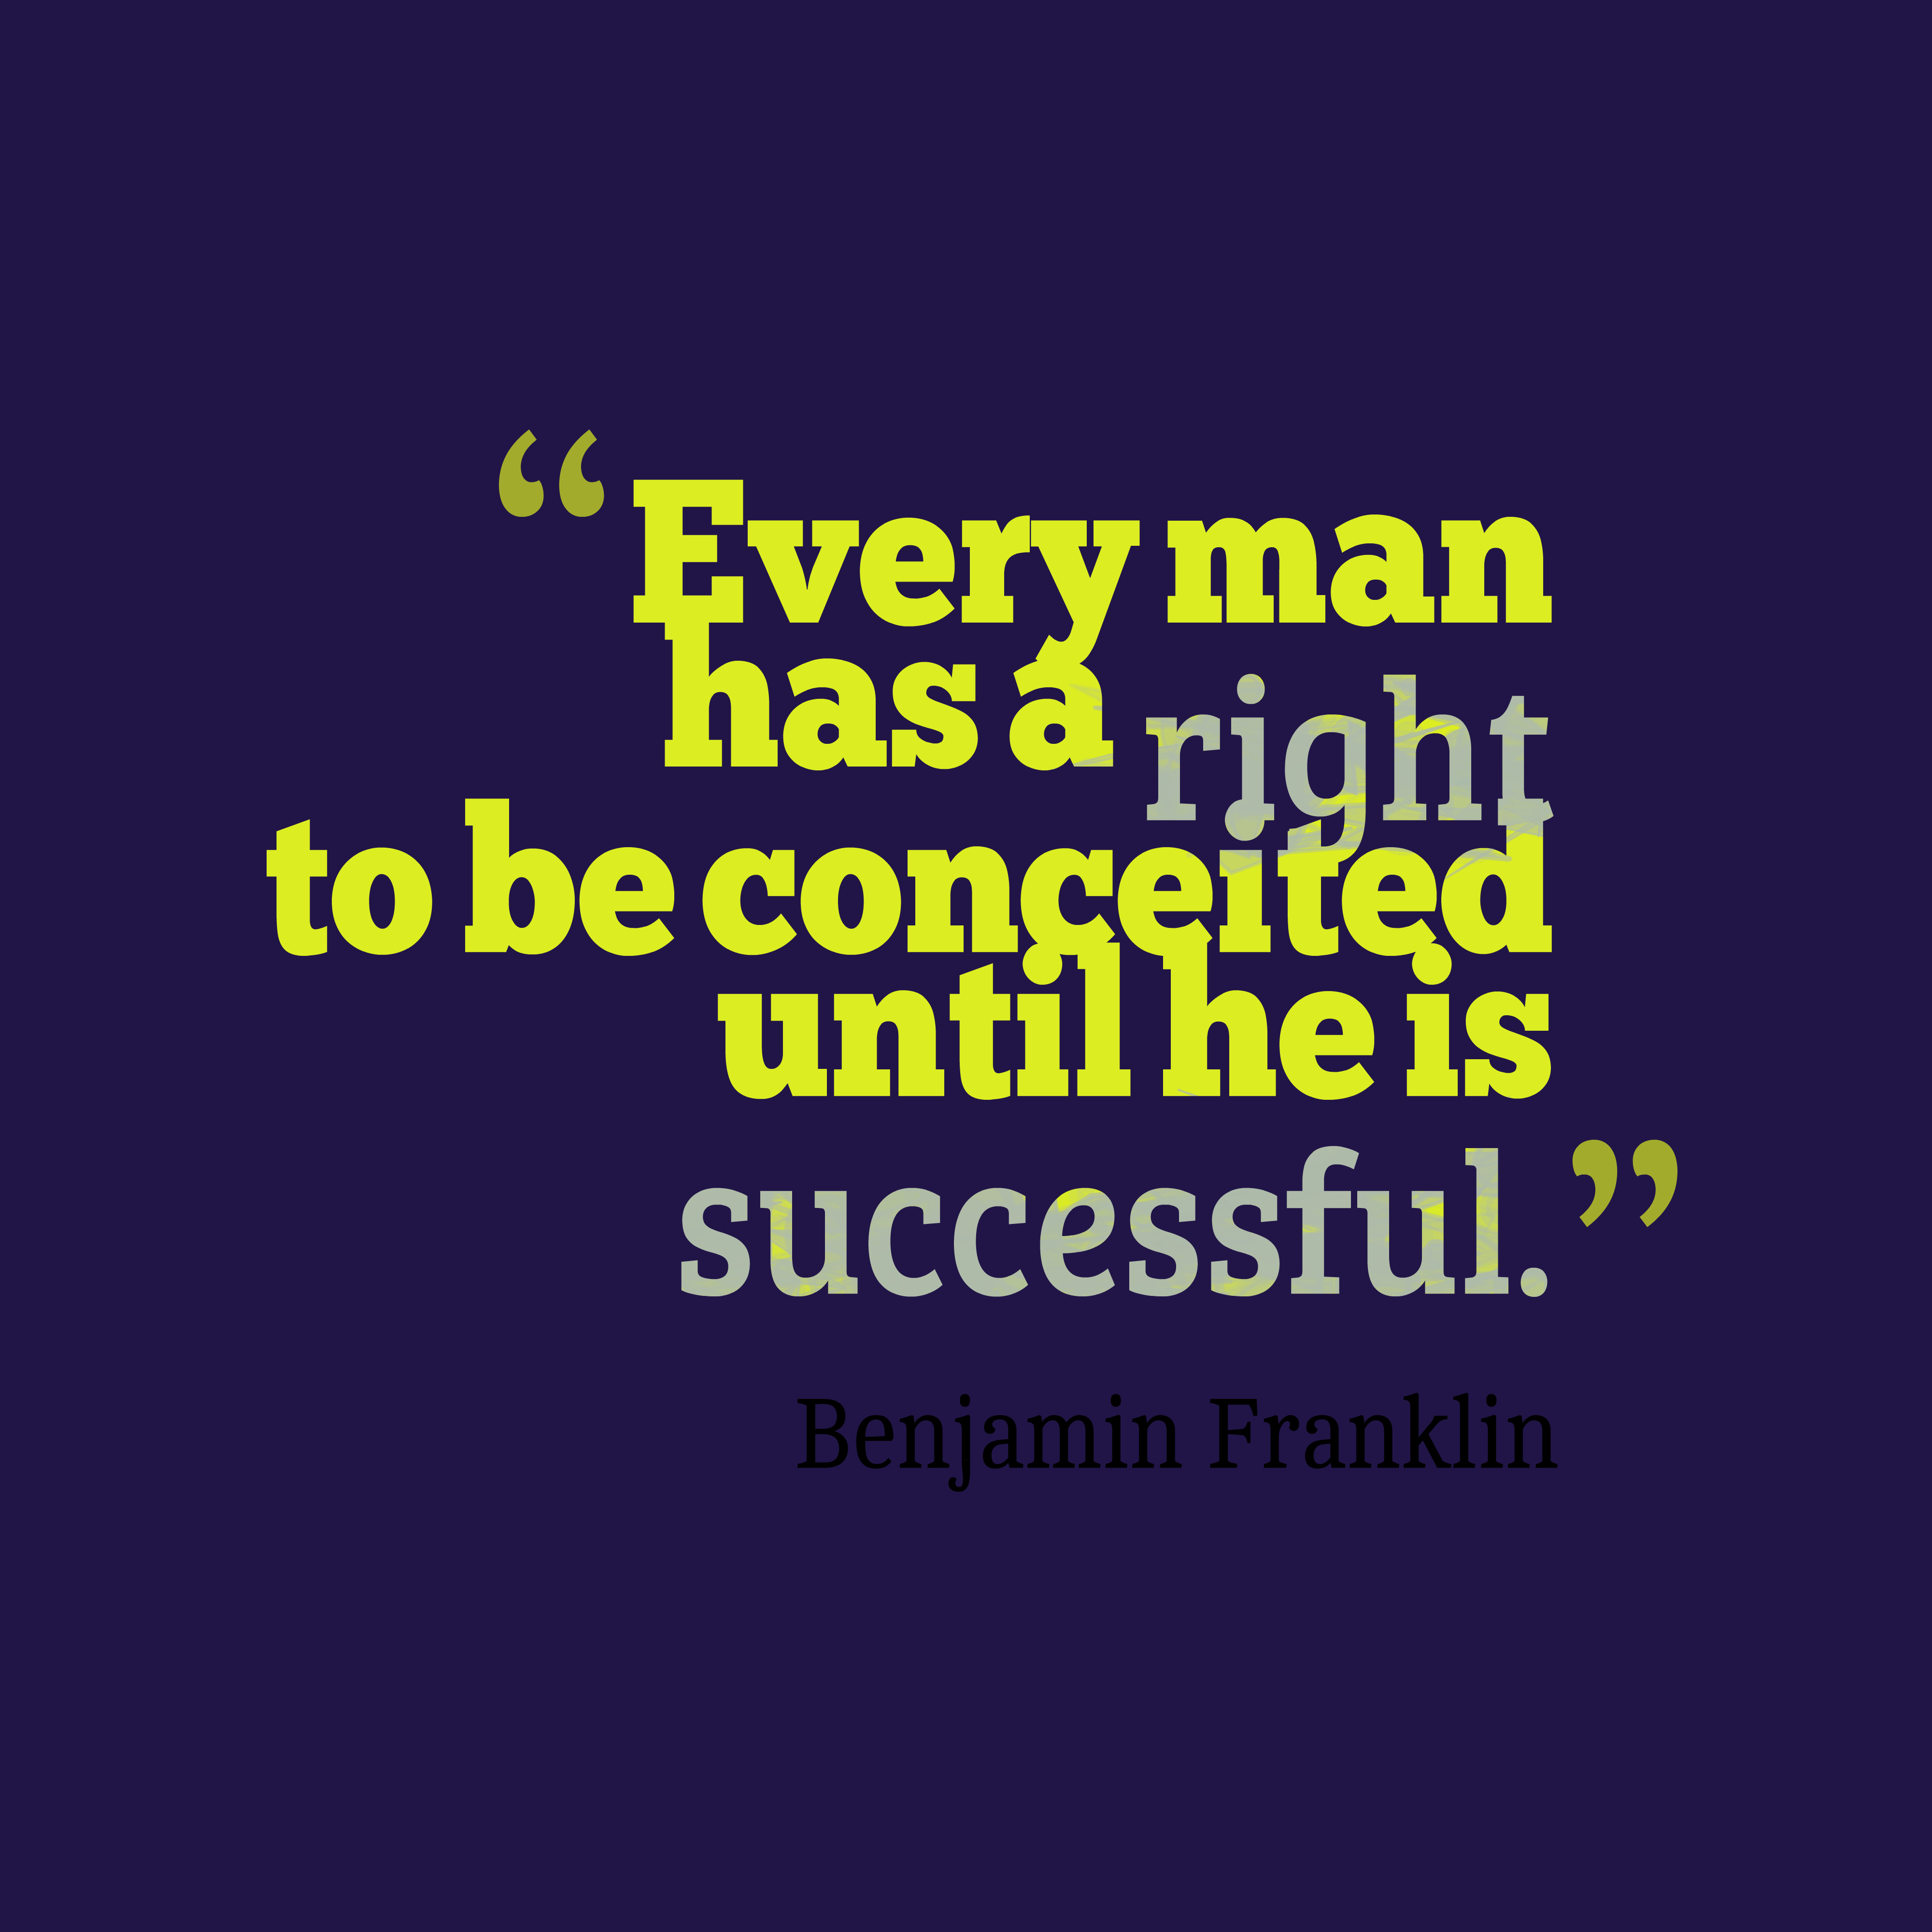 Quotes image of Every man has a right to be conceited until he is successful.